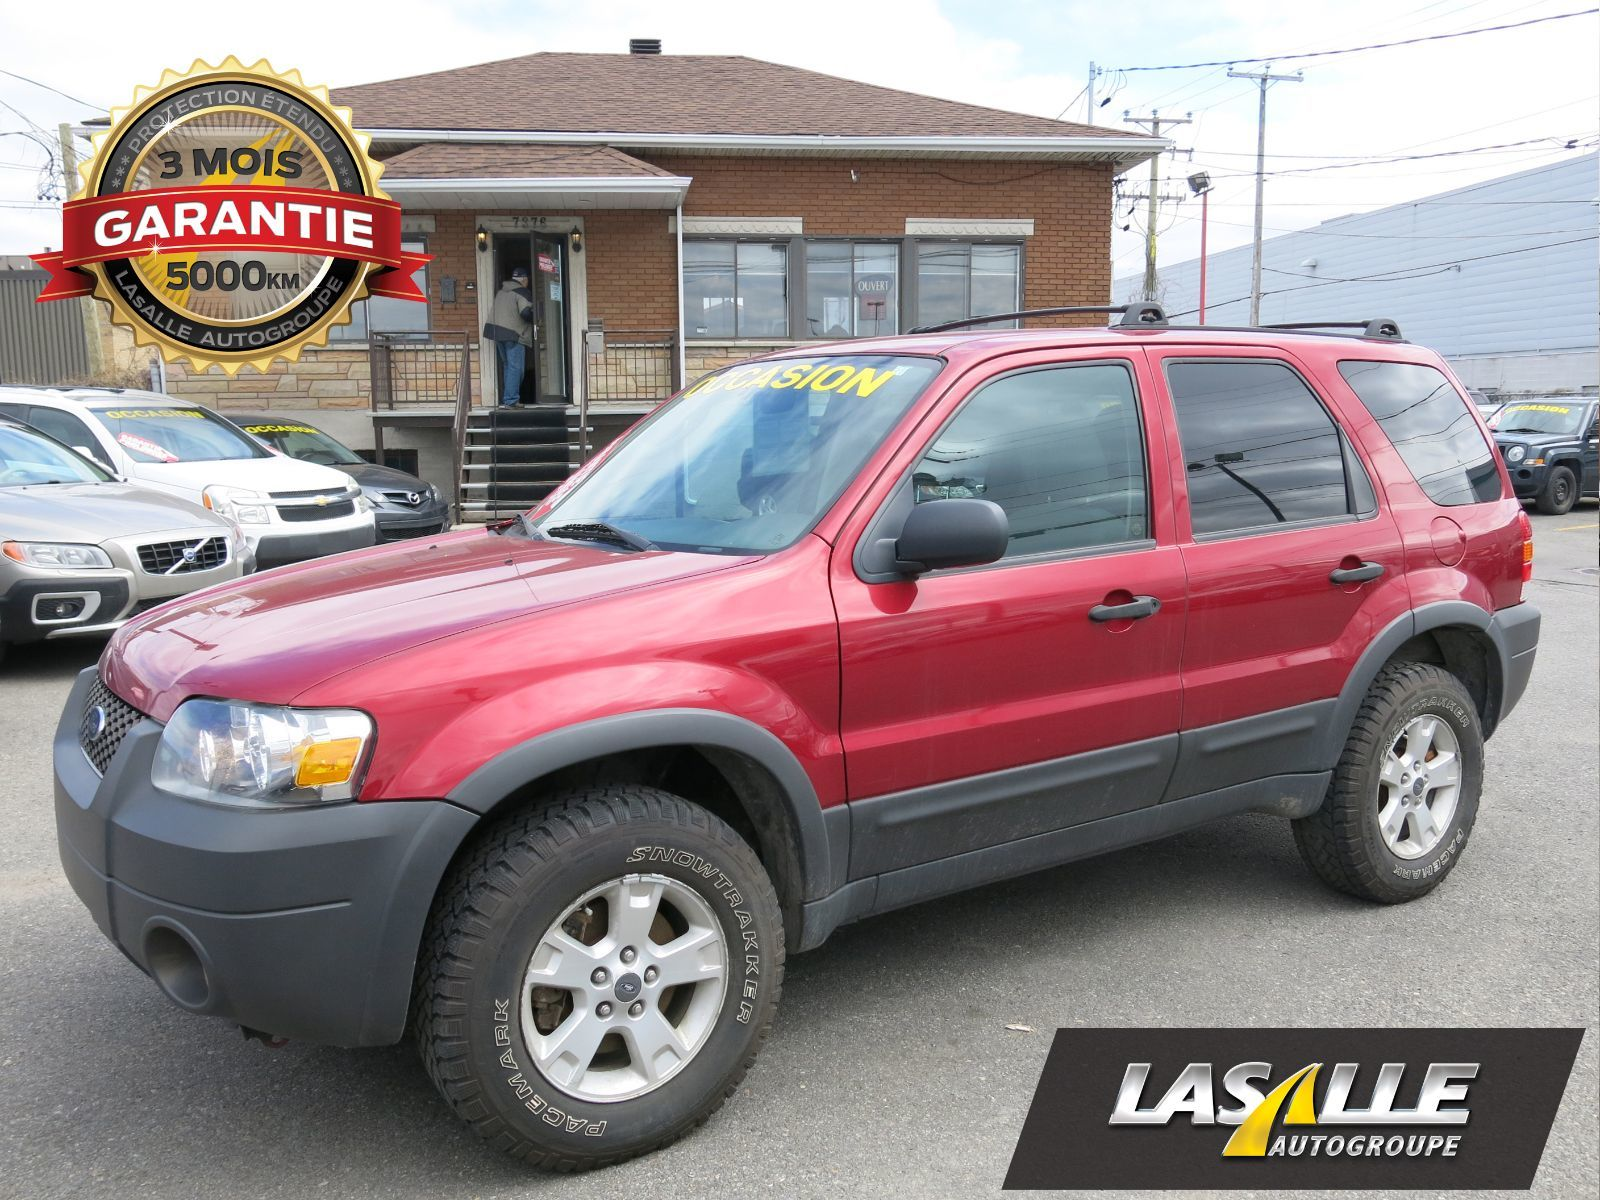 2006 ford escape xlt 4wd for sale montreal 2006 ford escape xlt 4wd used montreal 2006 ford. Black Bedroom Furniture Sets. Home Design Ideas